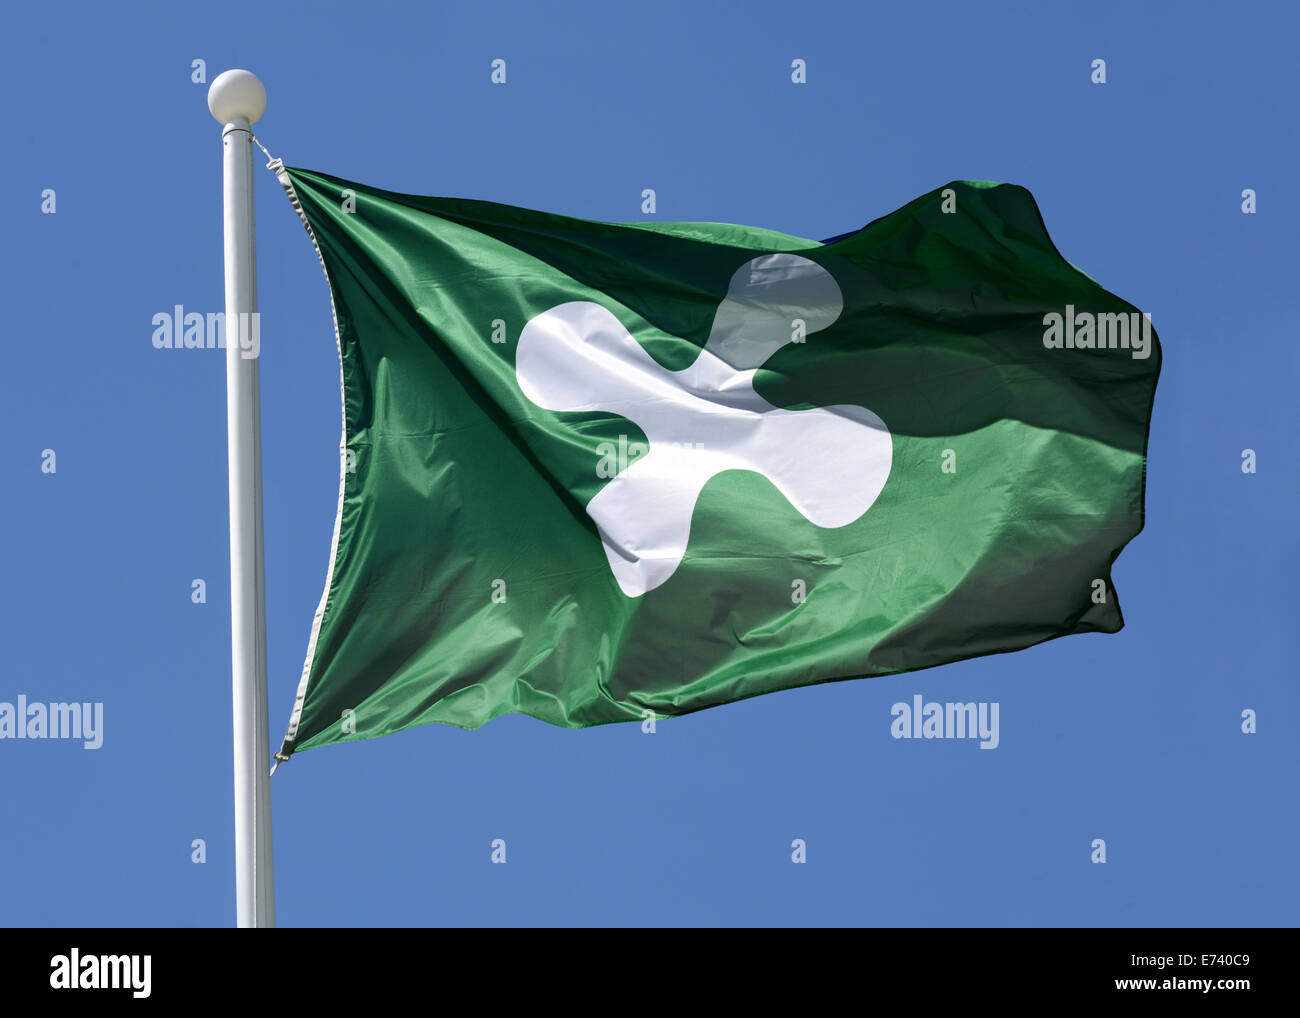 Regional flag of Lombardy - Italy - - Stock Image